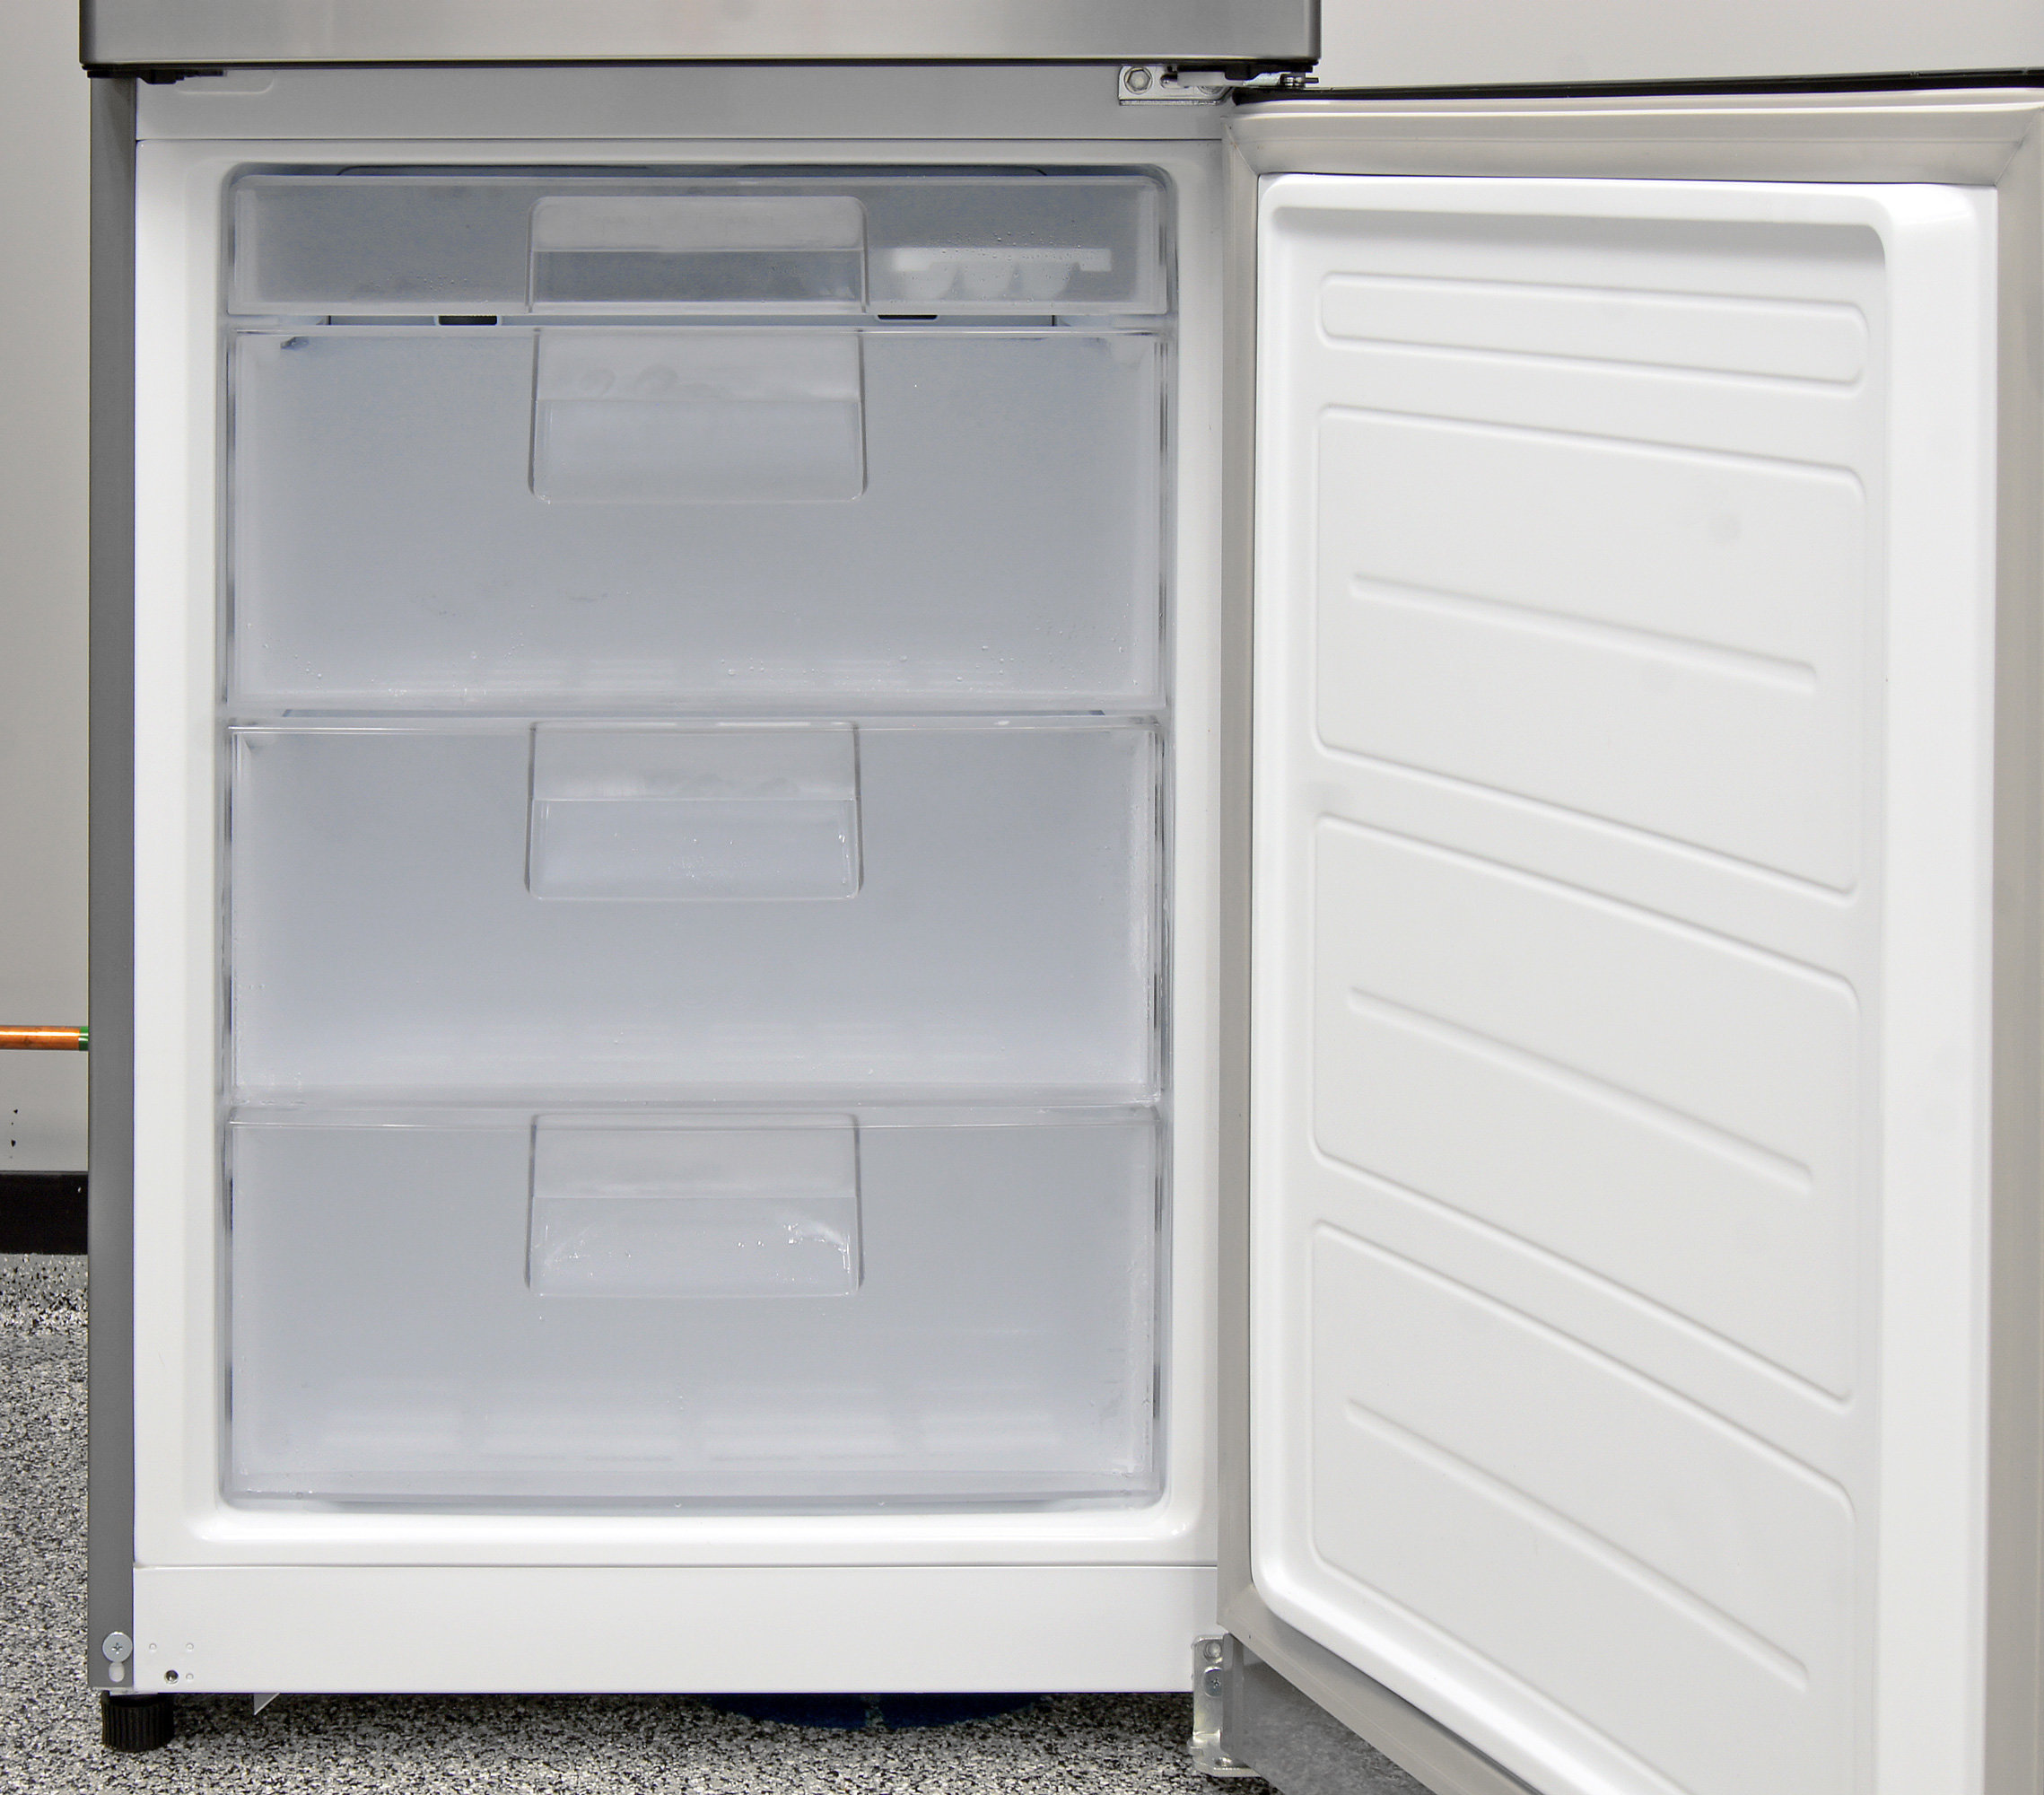 As with most compact bottom fridges, the LG LBN10551PV's freezer has several drawers and no door storage.